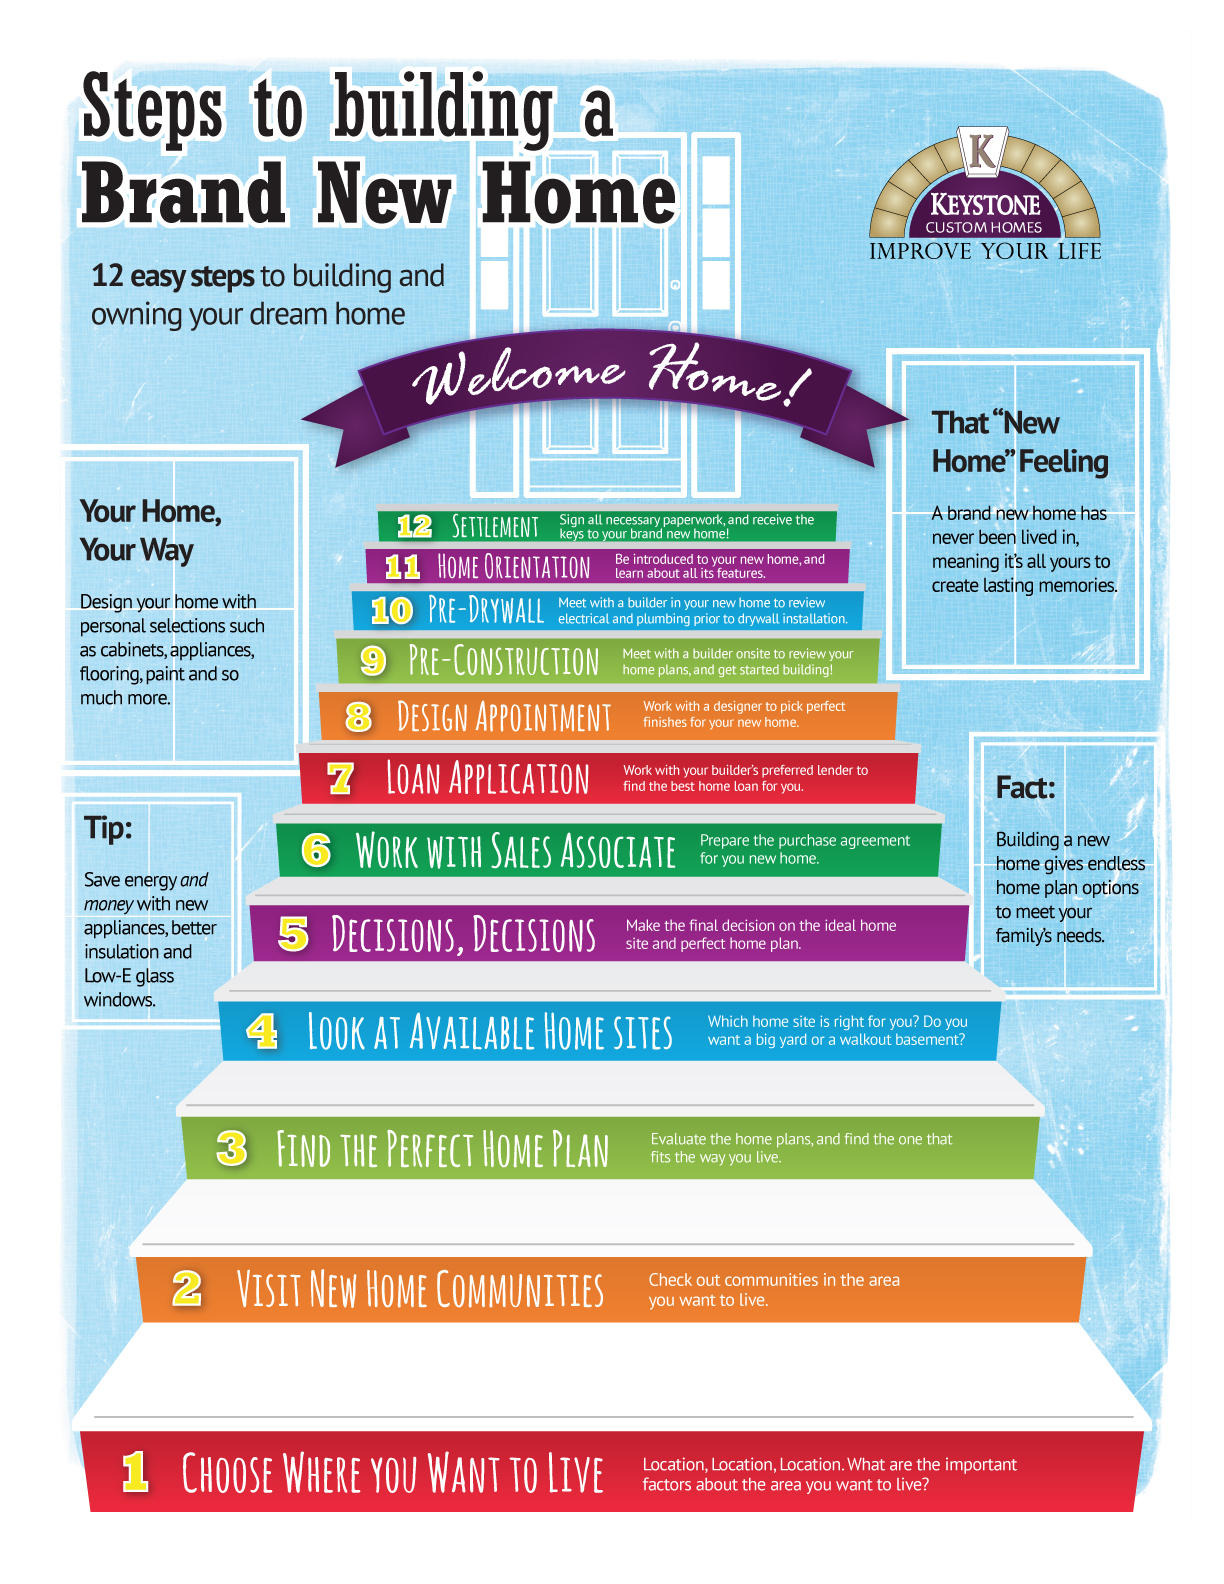 building brand new home infographic